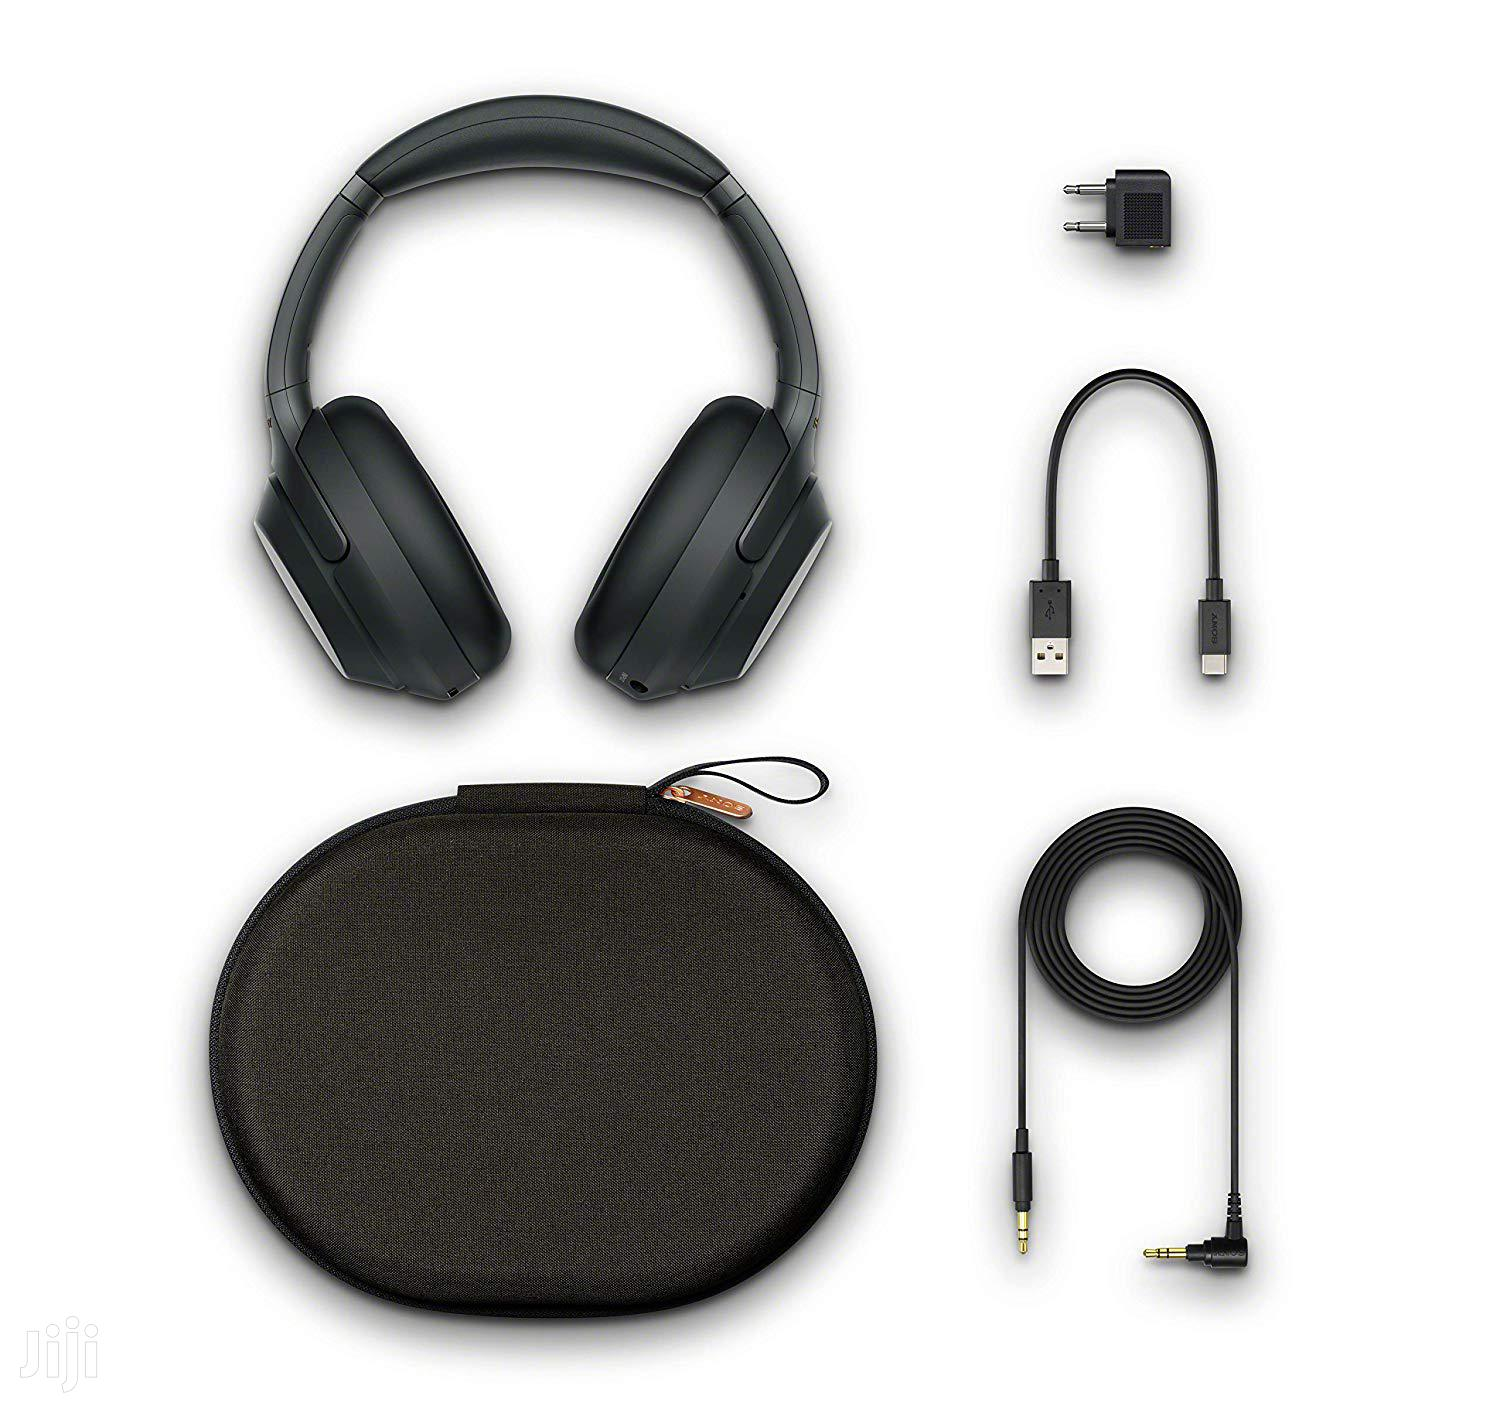 Archive: Sony WH-1000XM3 Wireless Noise-canceling Over-ear Headphones (Black)